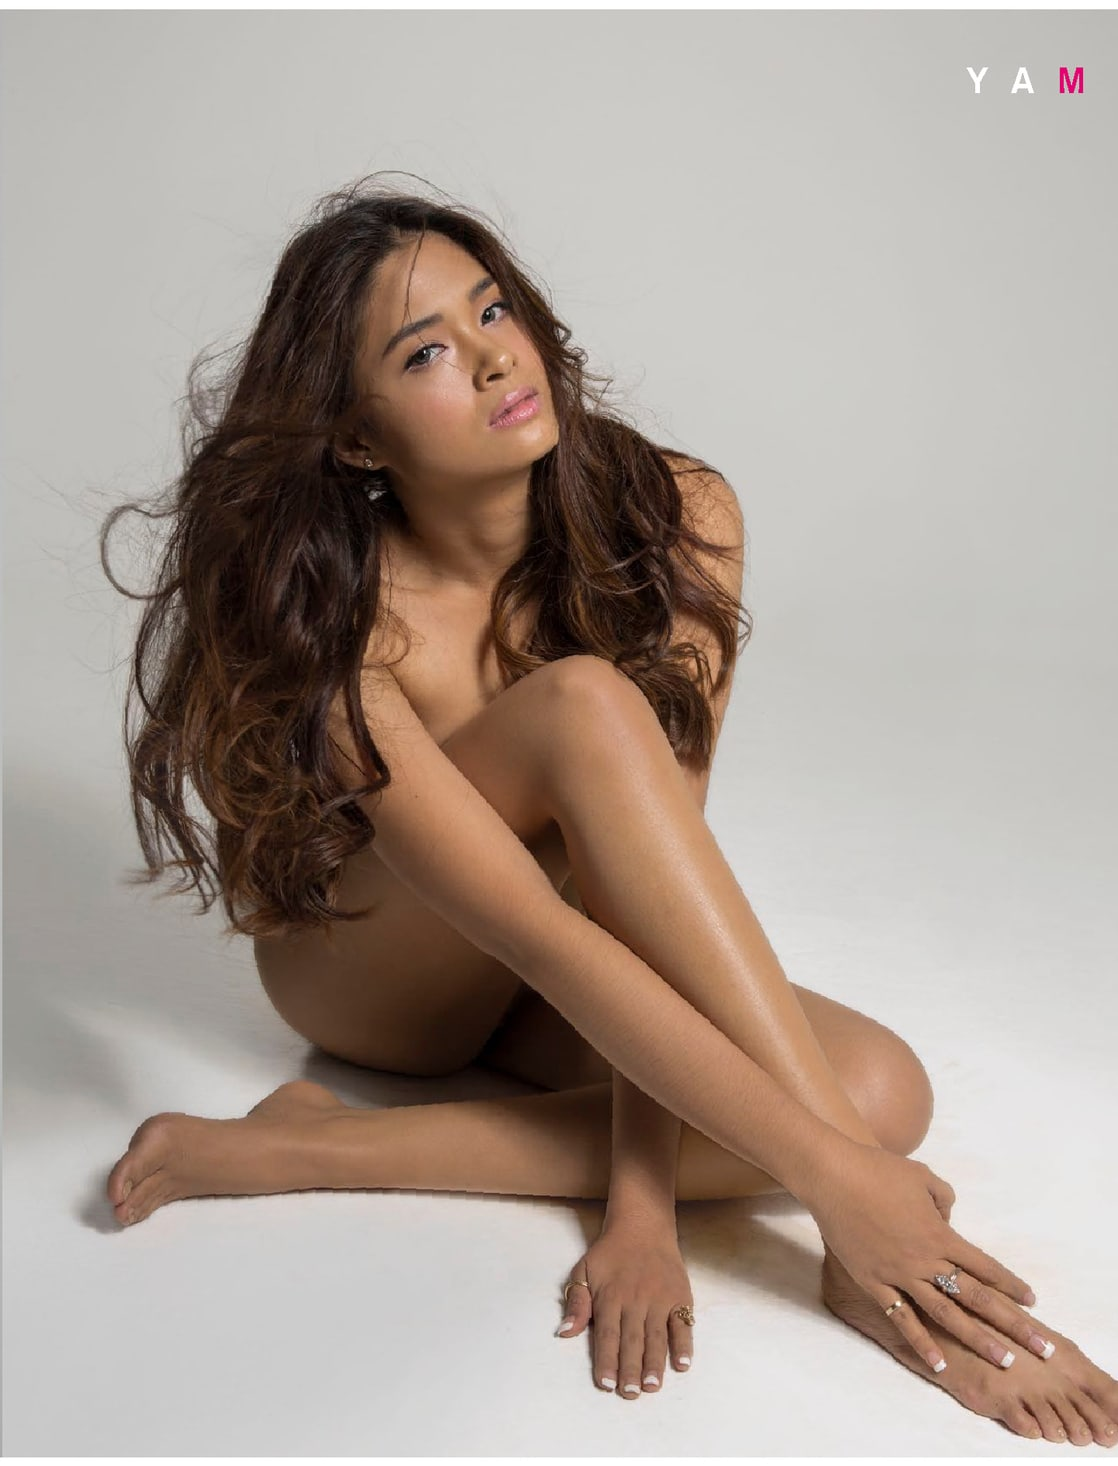 Yam concepcion sexy pictures amazing